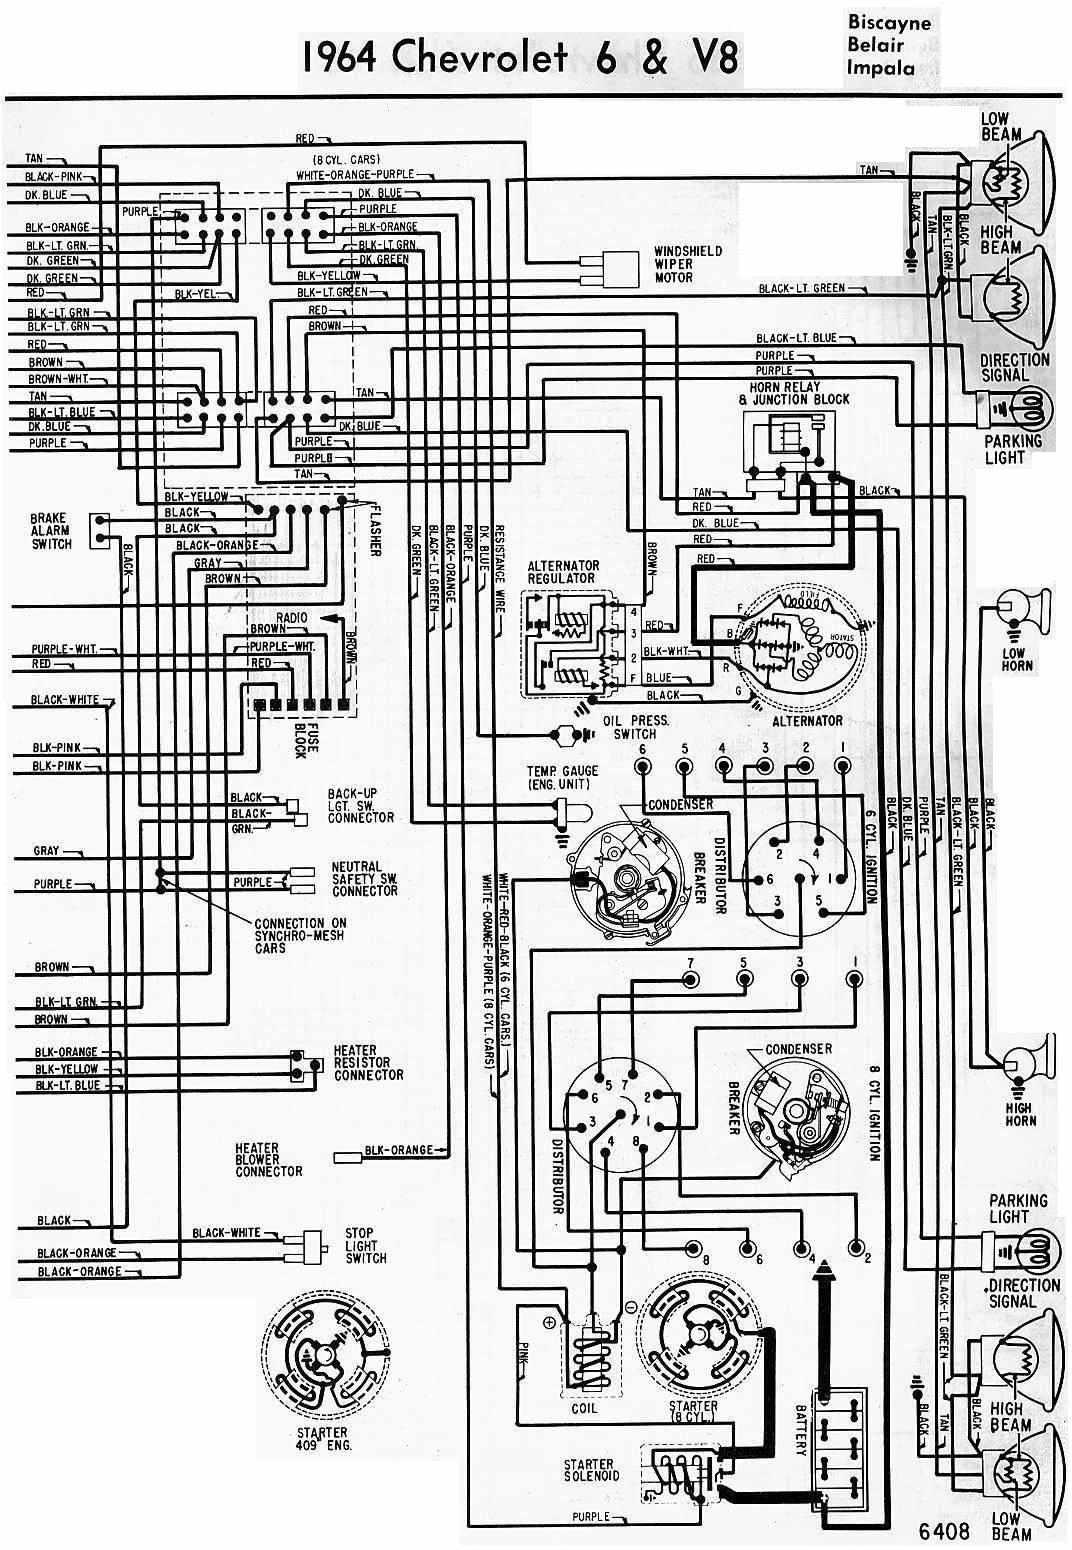 Electrical+Wiring+Diagram+Of+1964+Chevrolet+6+And+V8 1964 bel air wire diagram colors incorrect chevytalk free 64 Chevy Impala Wiring Diagram at webbmarketing.co